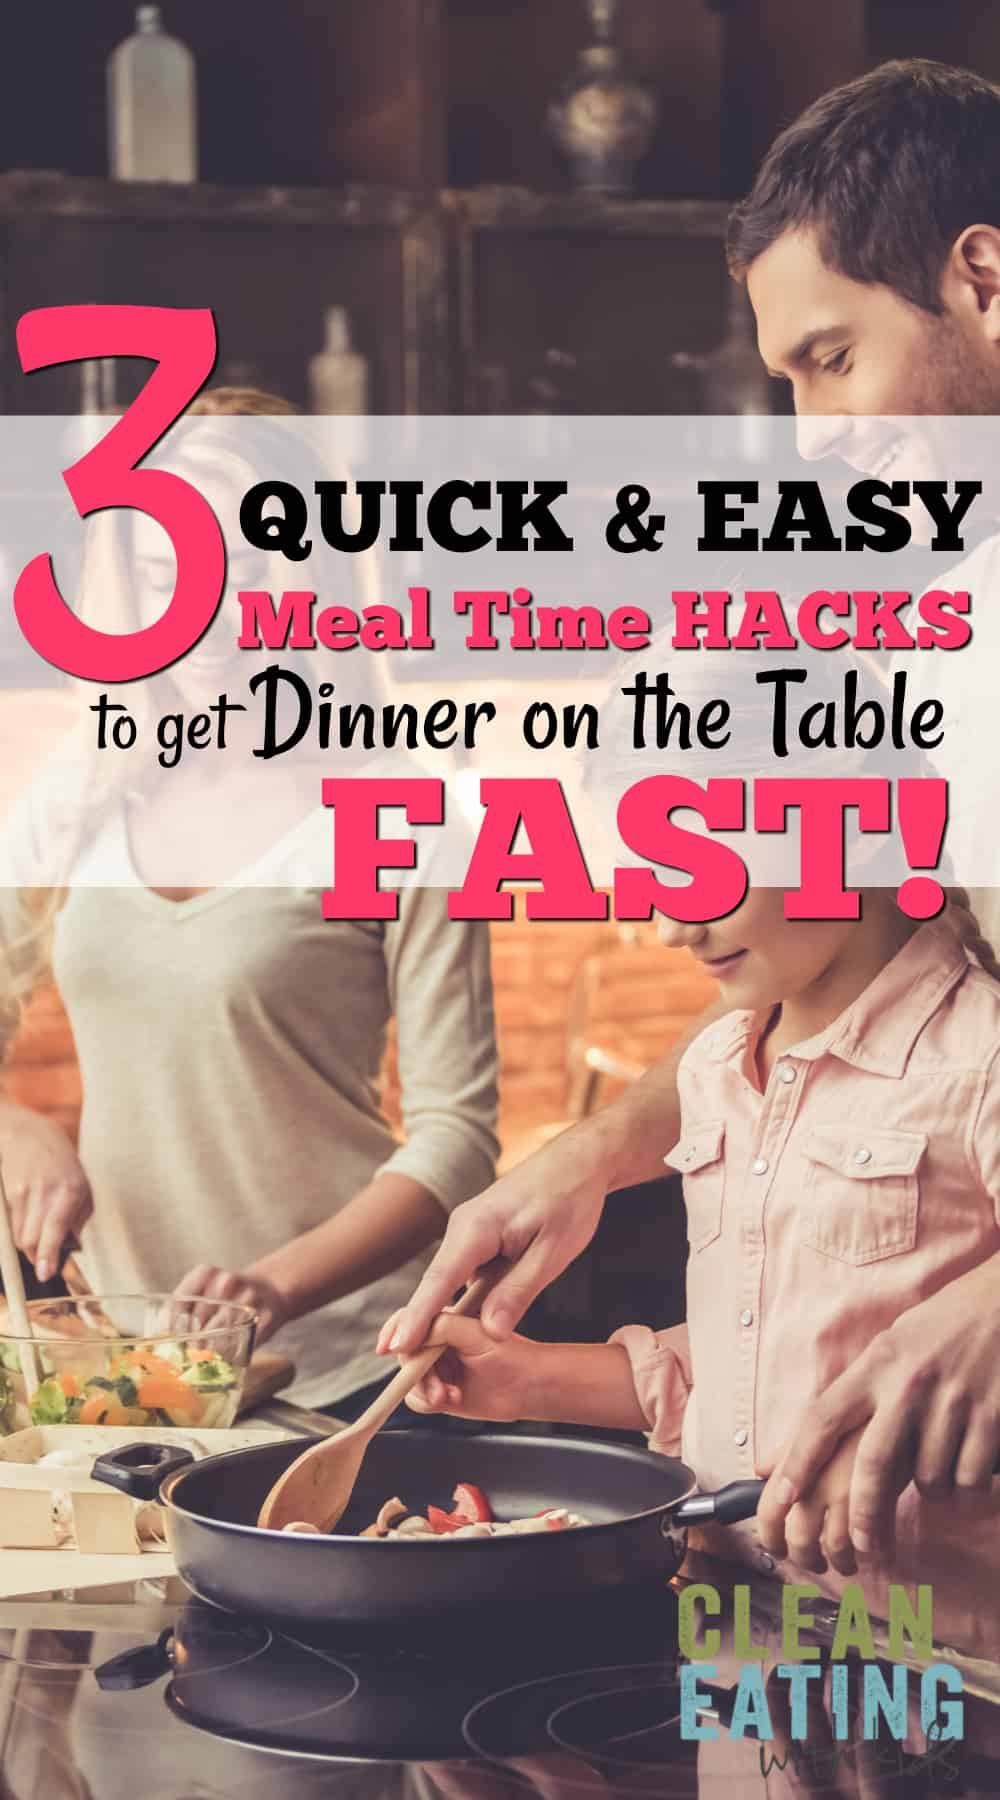 3 Quick and easy meal time hacks to get dinner on the table super FAST!